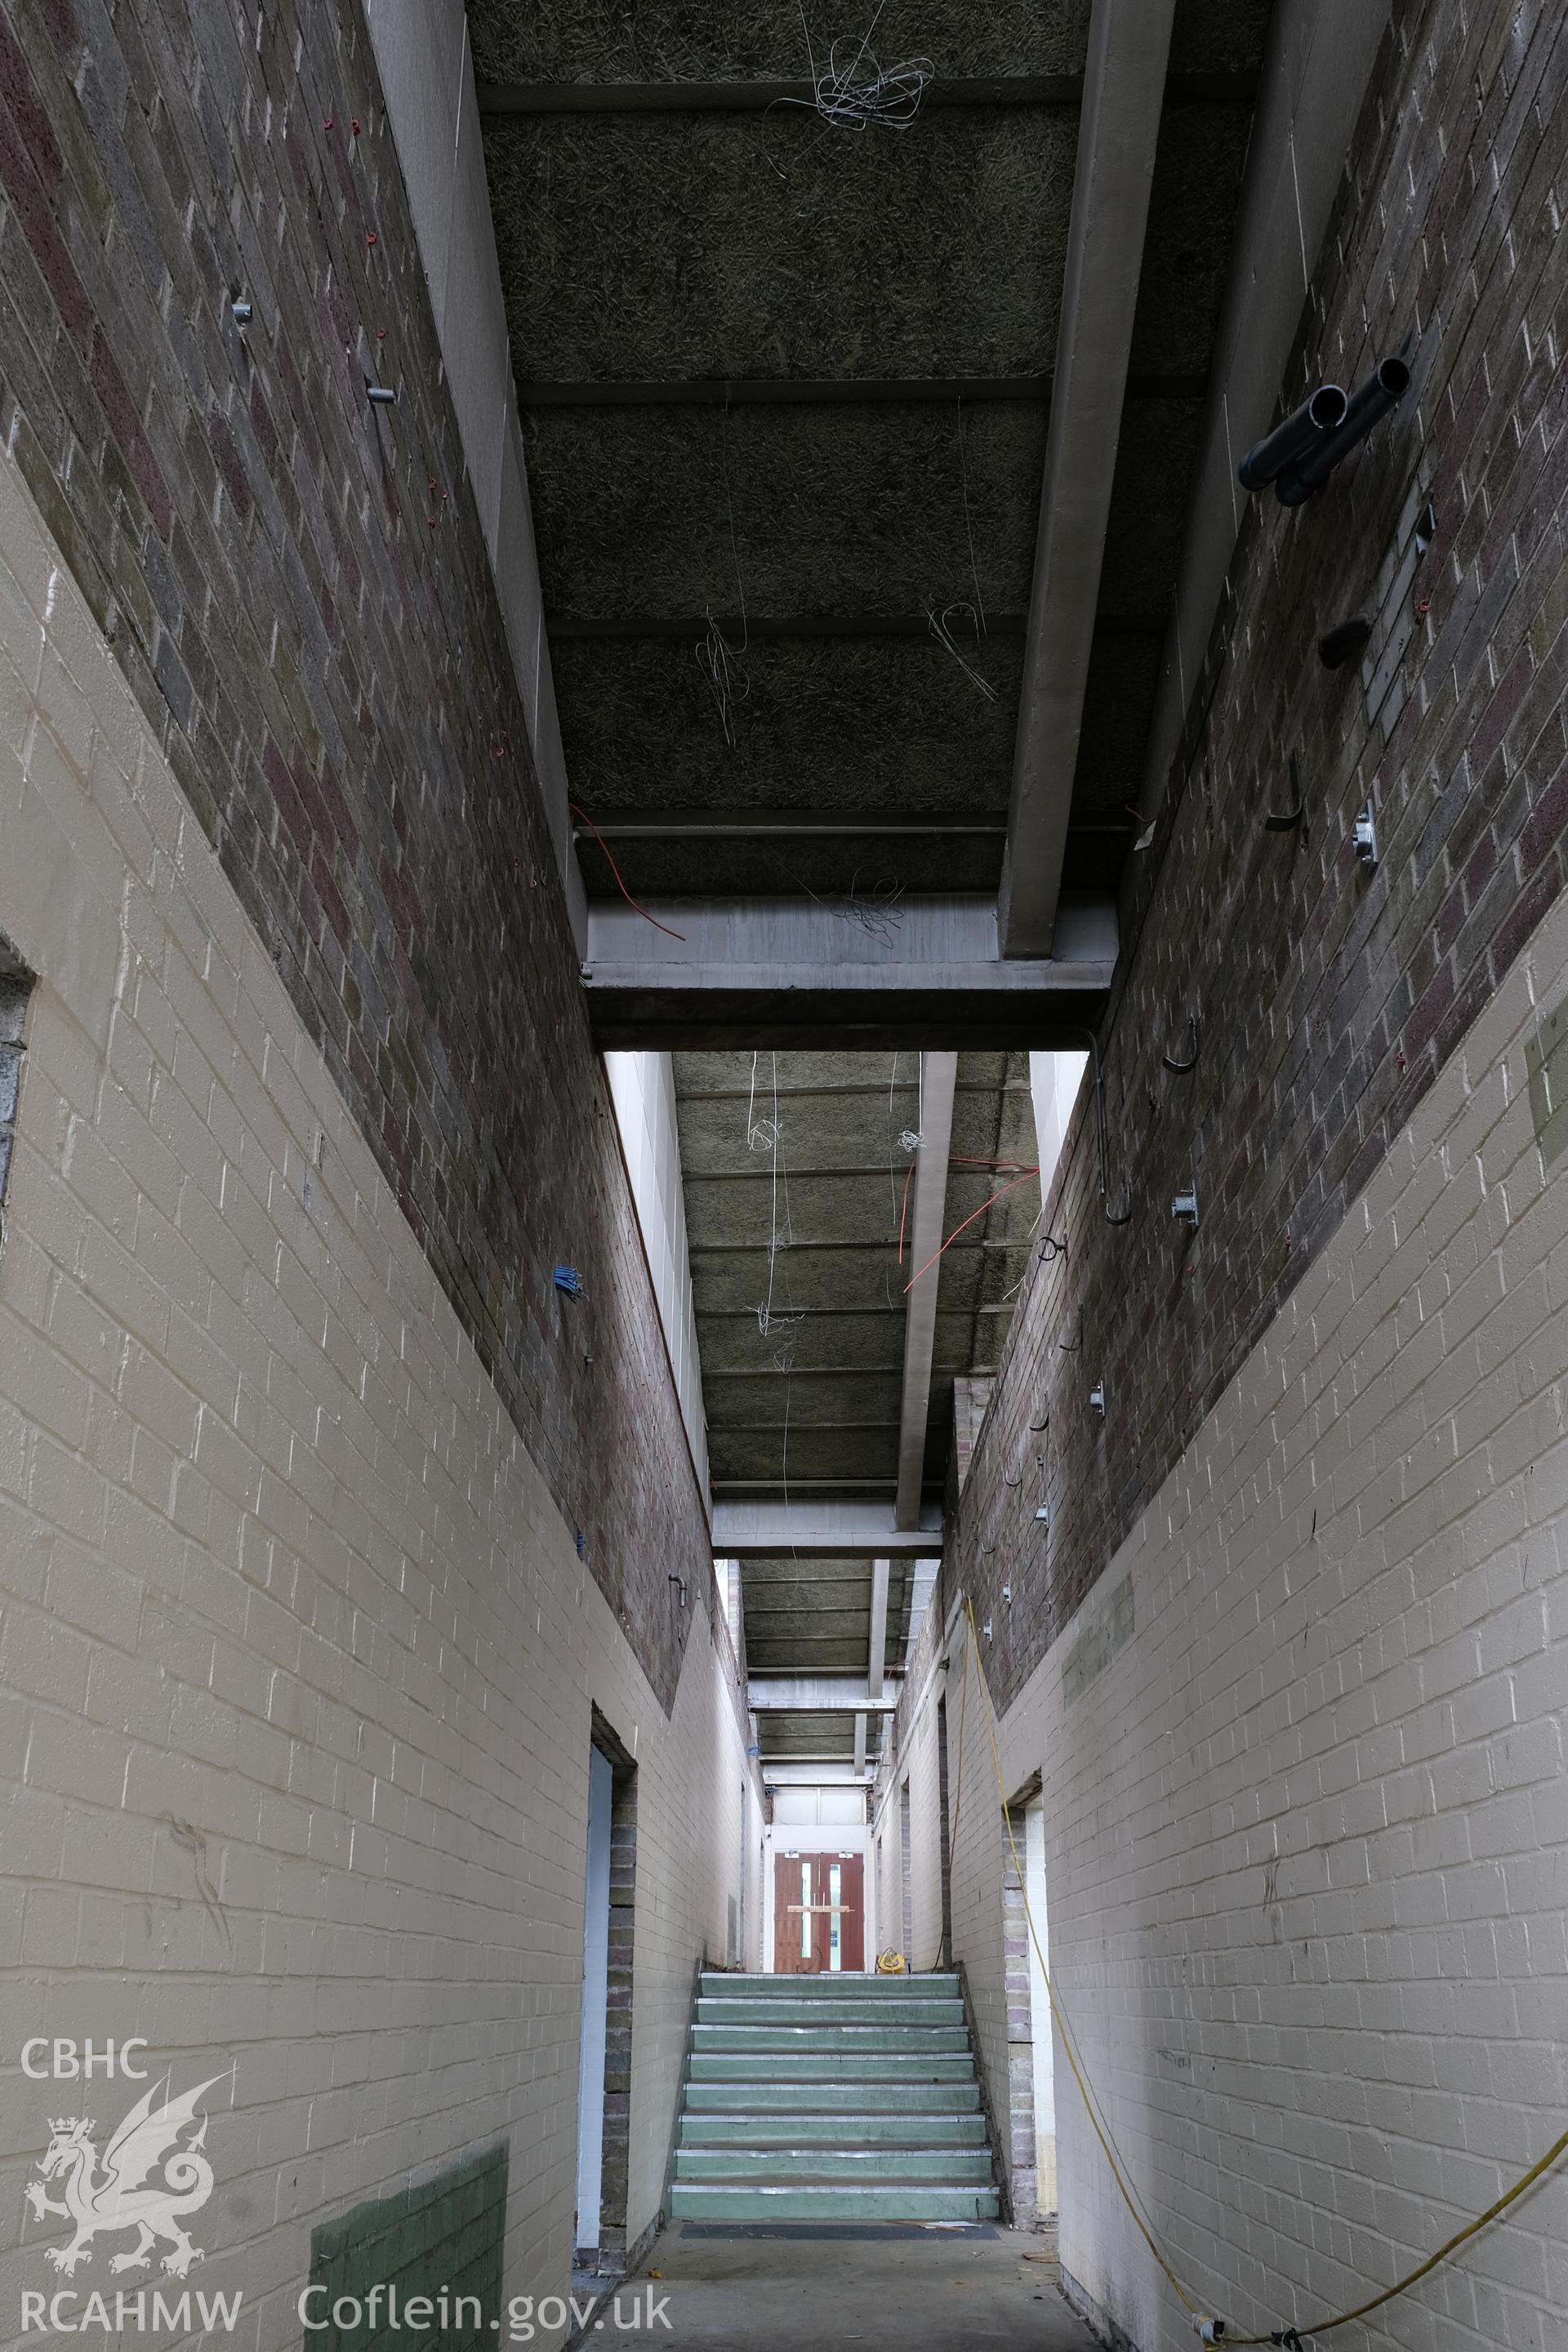 Digital colour photograph showing interior view of corridor at Caernarfonshire Technical College, Ffriddoedd Road, Bangor. Photographed by Dilys Morgan and donated by Wyn Thomas of Grwp Llandrillo-Menai Further Education College, 2019.